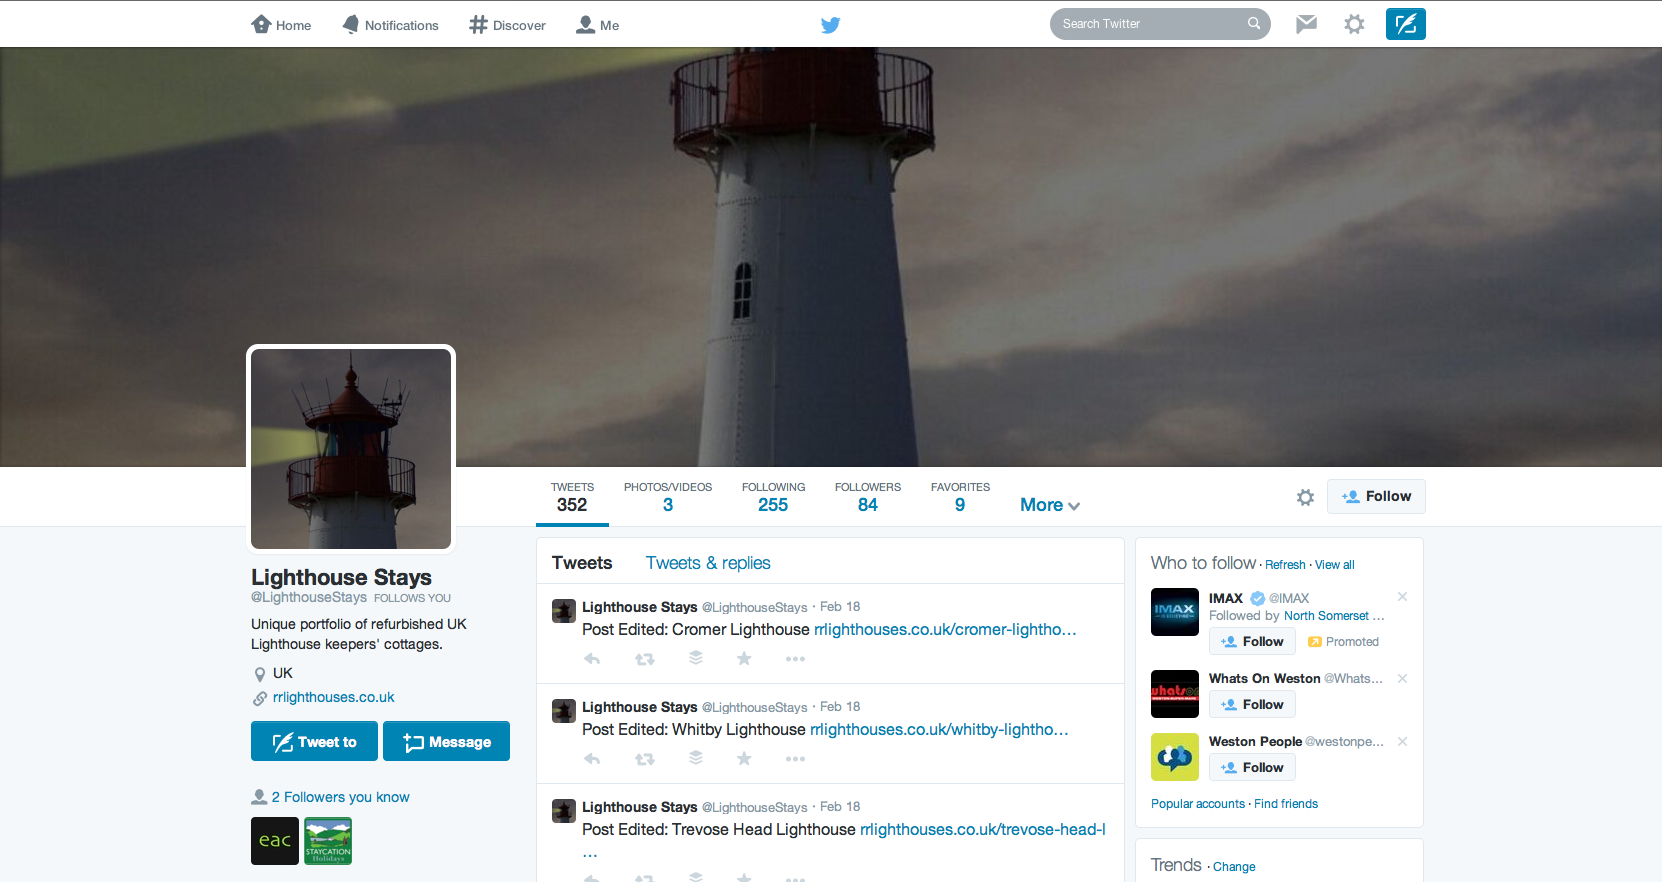 Rural Retreats Lighthouses Twitter Page